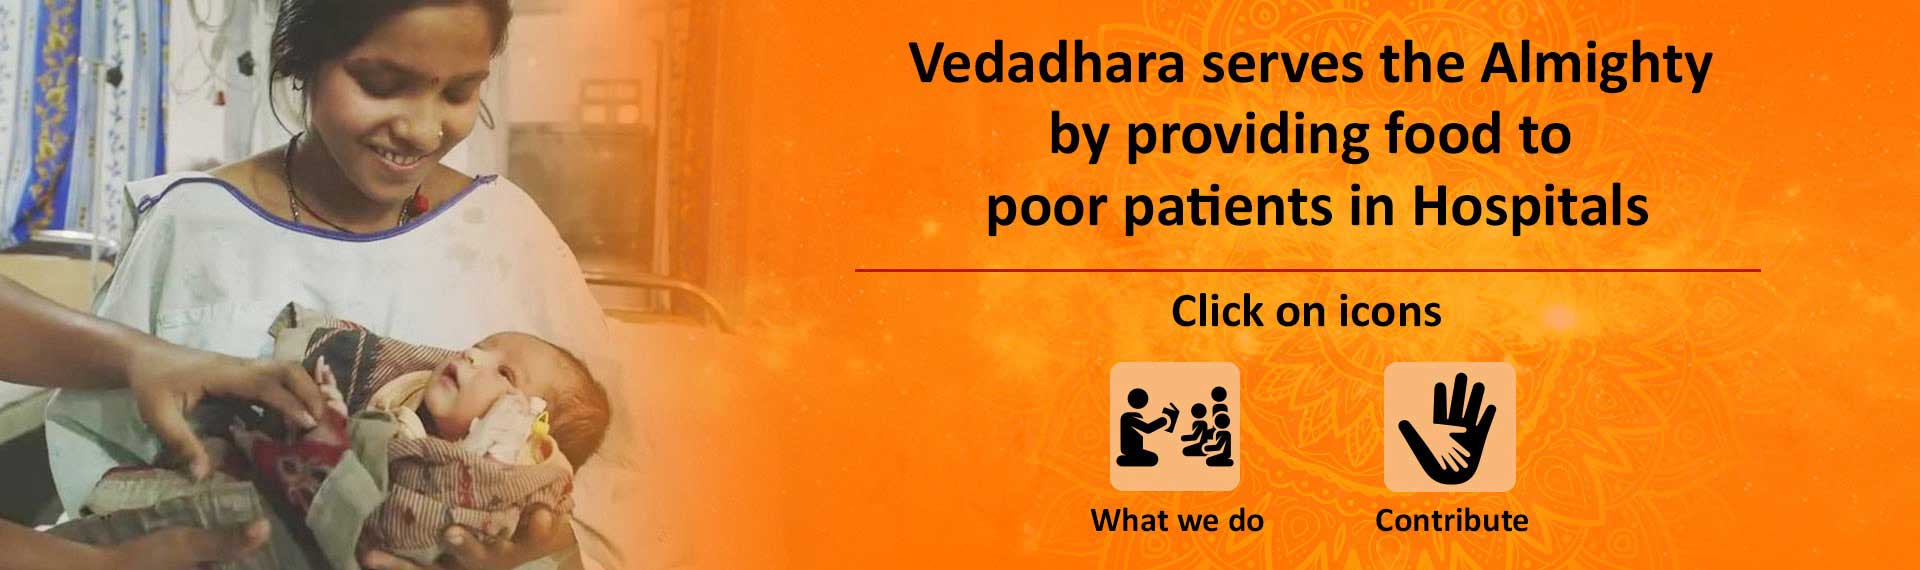 Vedadhara serves the Almighty by providing food to poor patients in Hospitals